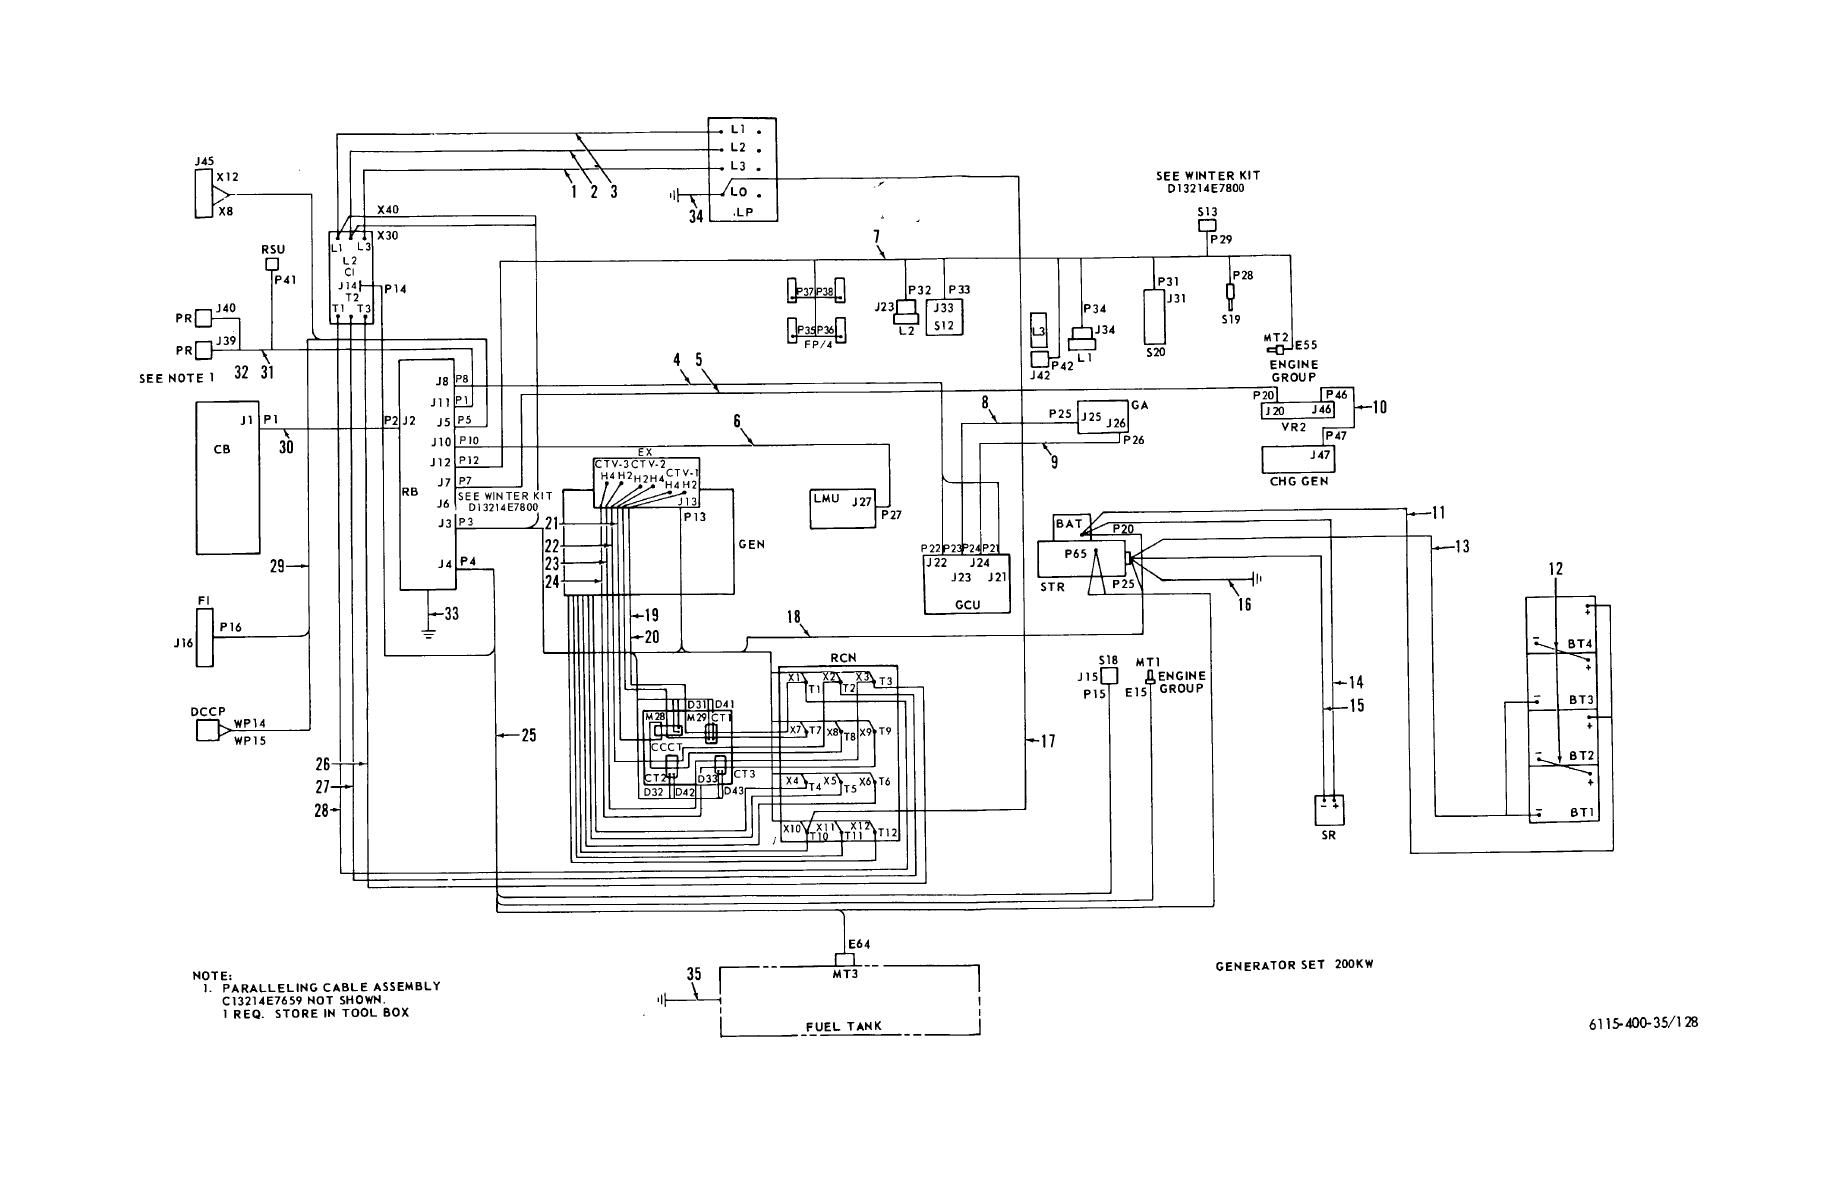 Figure 128 Wiring Diagram Interconnecting Wiring Harness